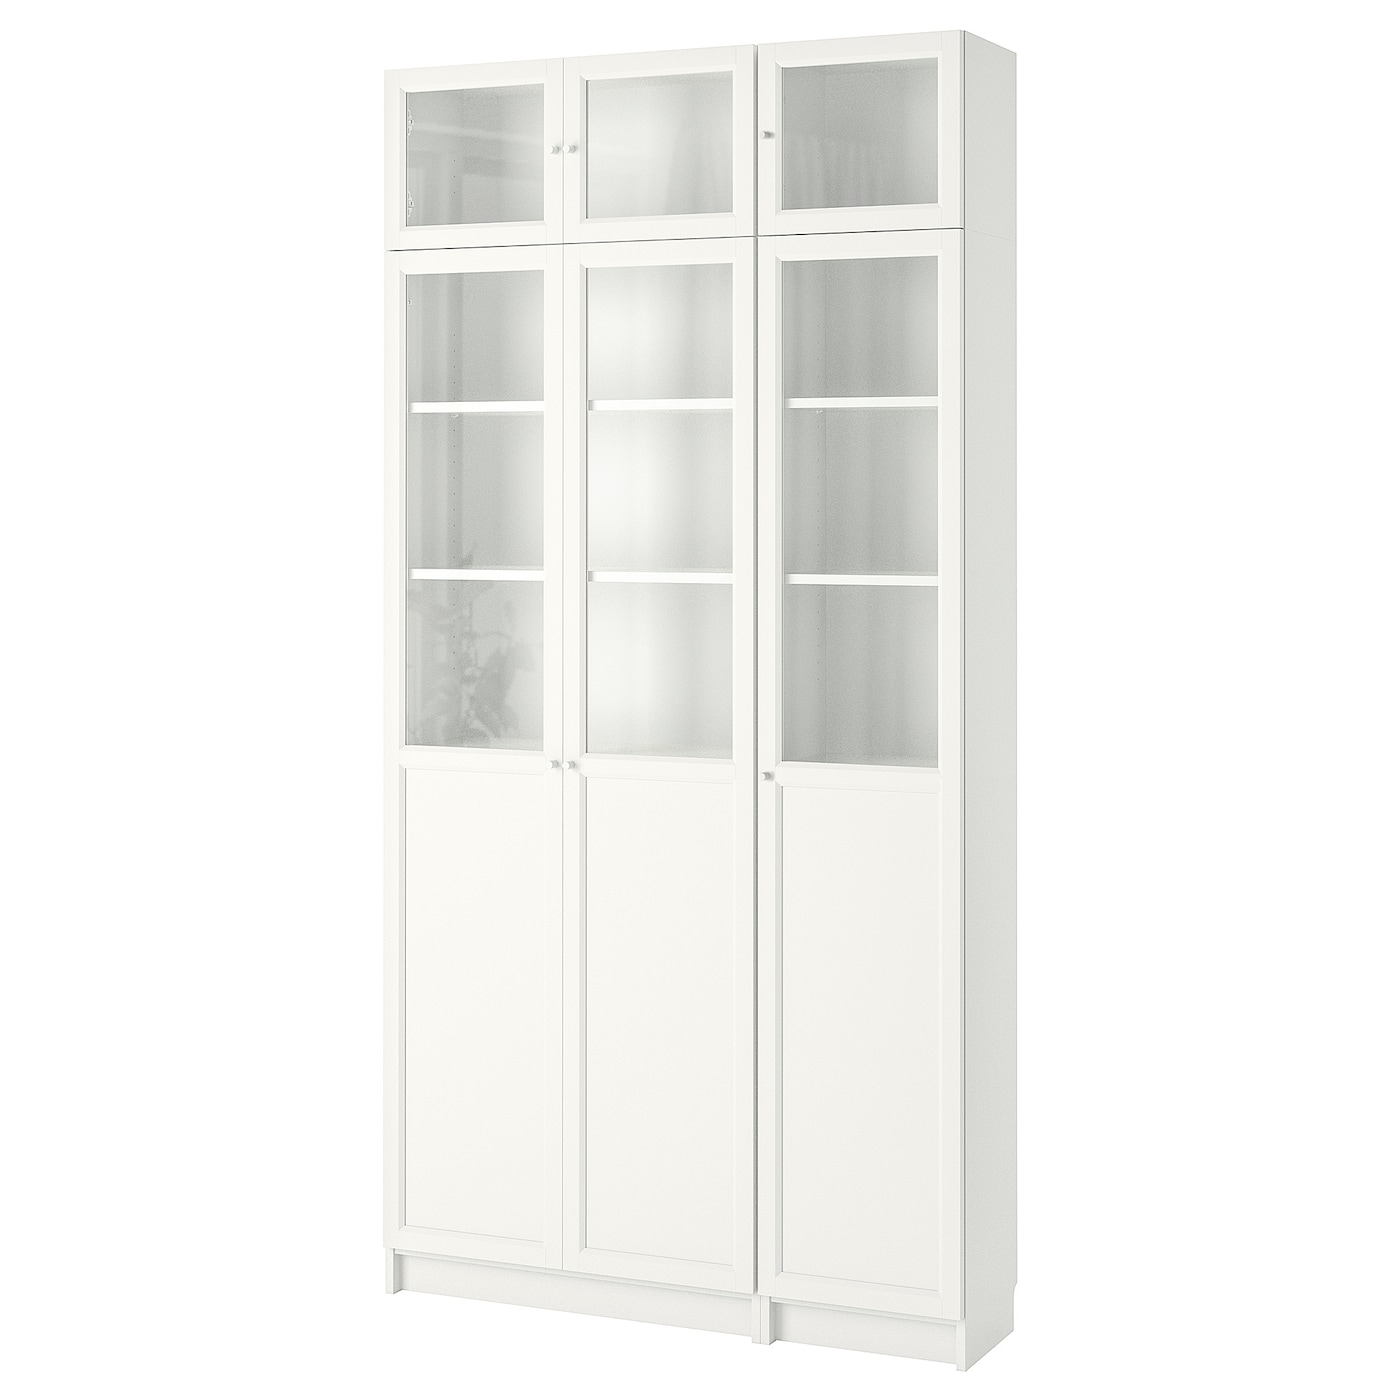 IKEA BILLY OXBERG Bibliotheque Tablettes Reglables A Placer Selon Vos Besoins